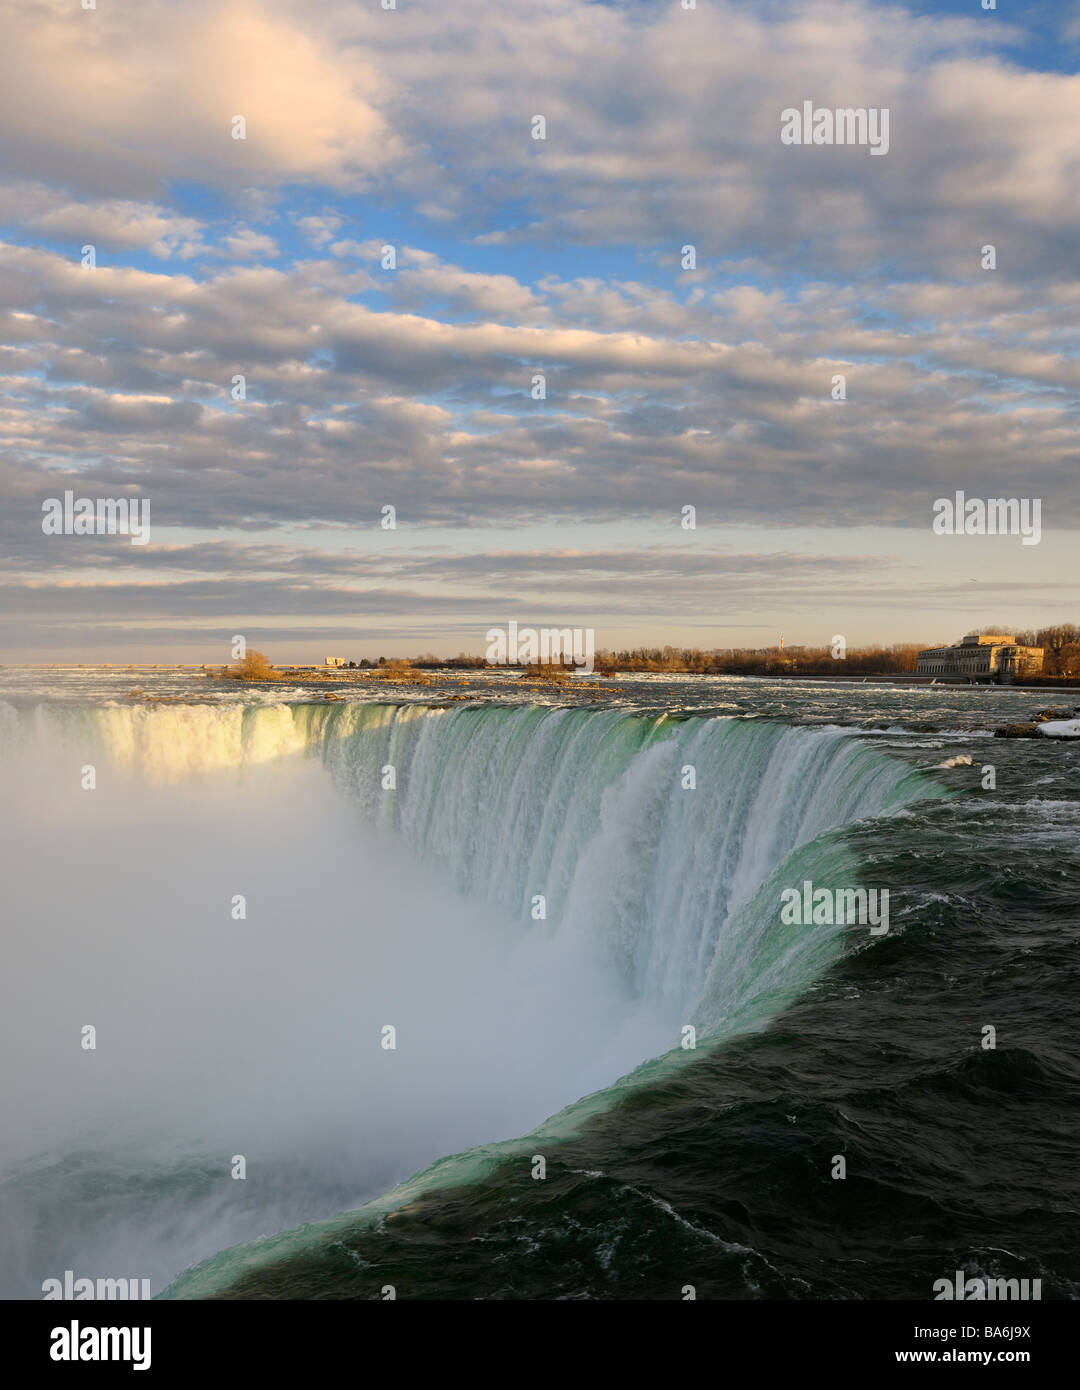 Sun on clouds at sunset at the Horseshoe Falls from Table Rock Canadian Niagara Falls Canada - Stock Image